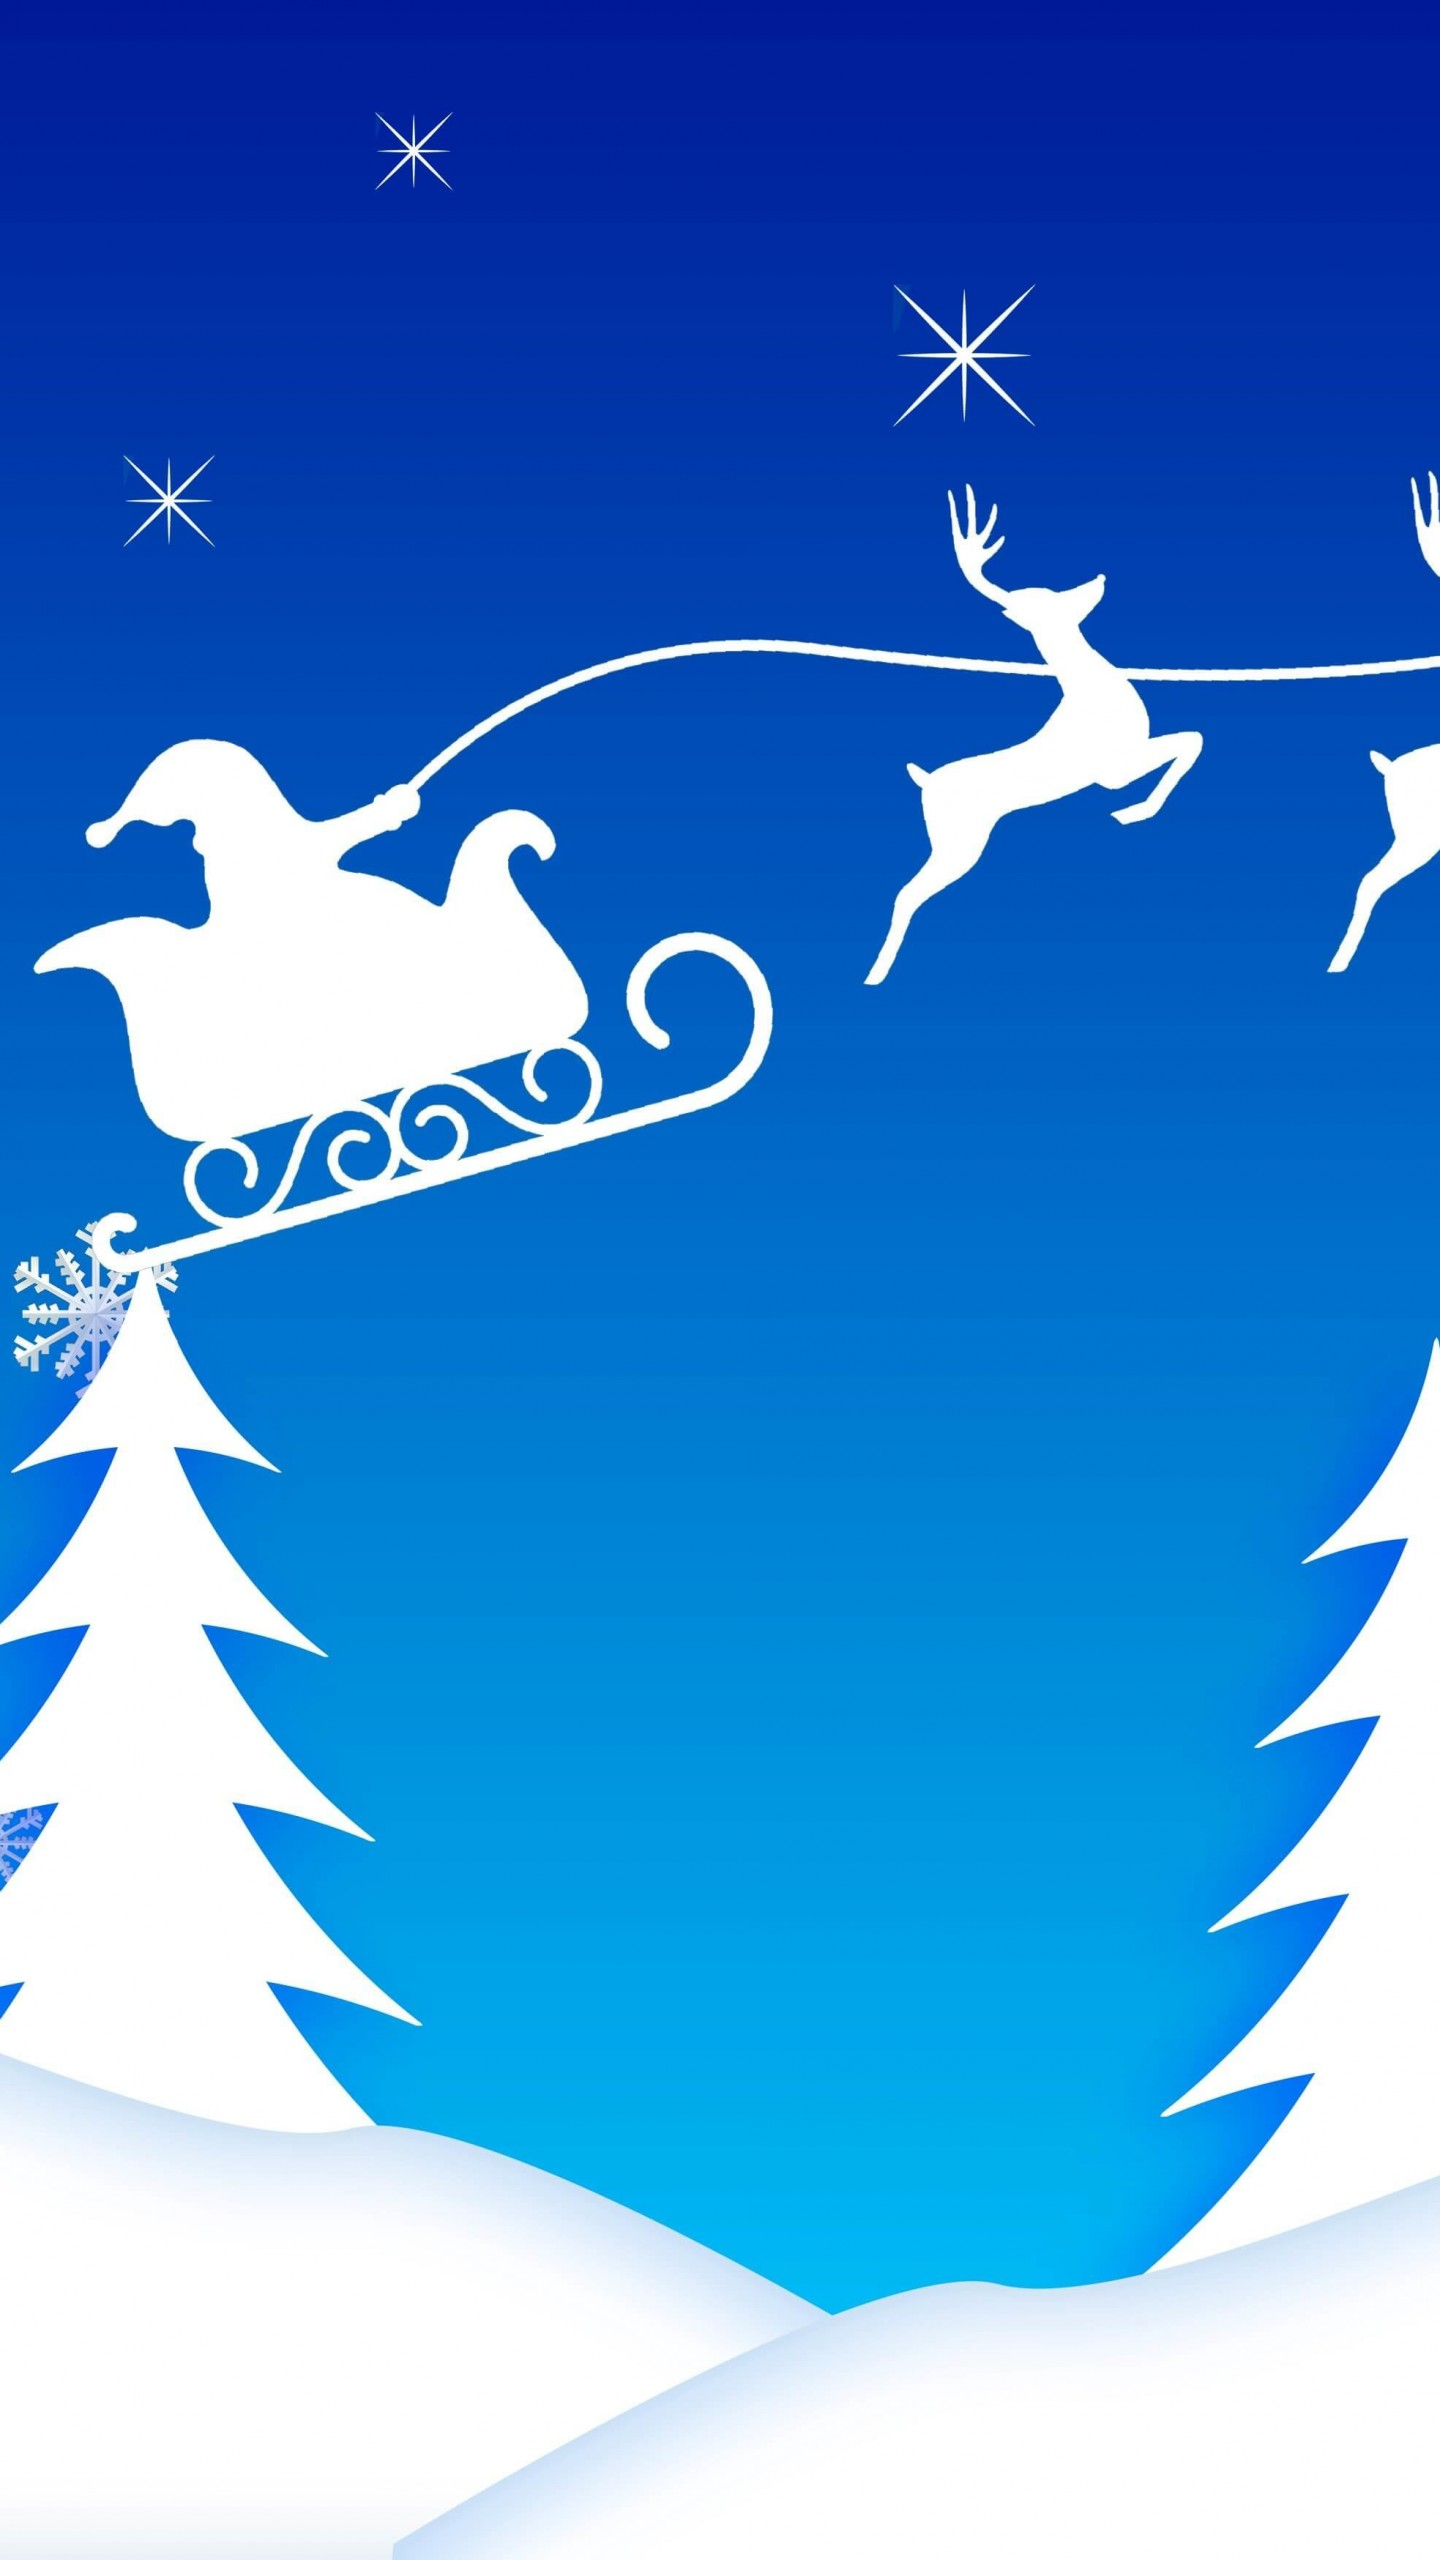 Santa's Sleigh Illustration Wallpaper for SAMSUNG Galaxy Note 4